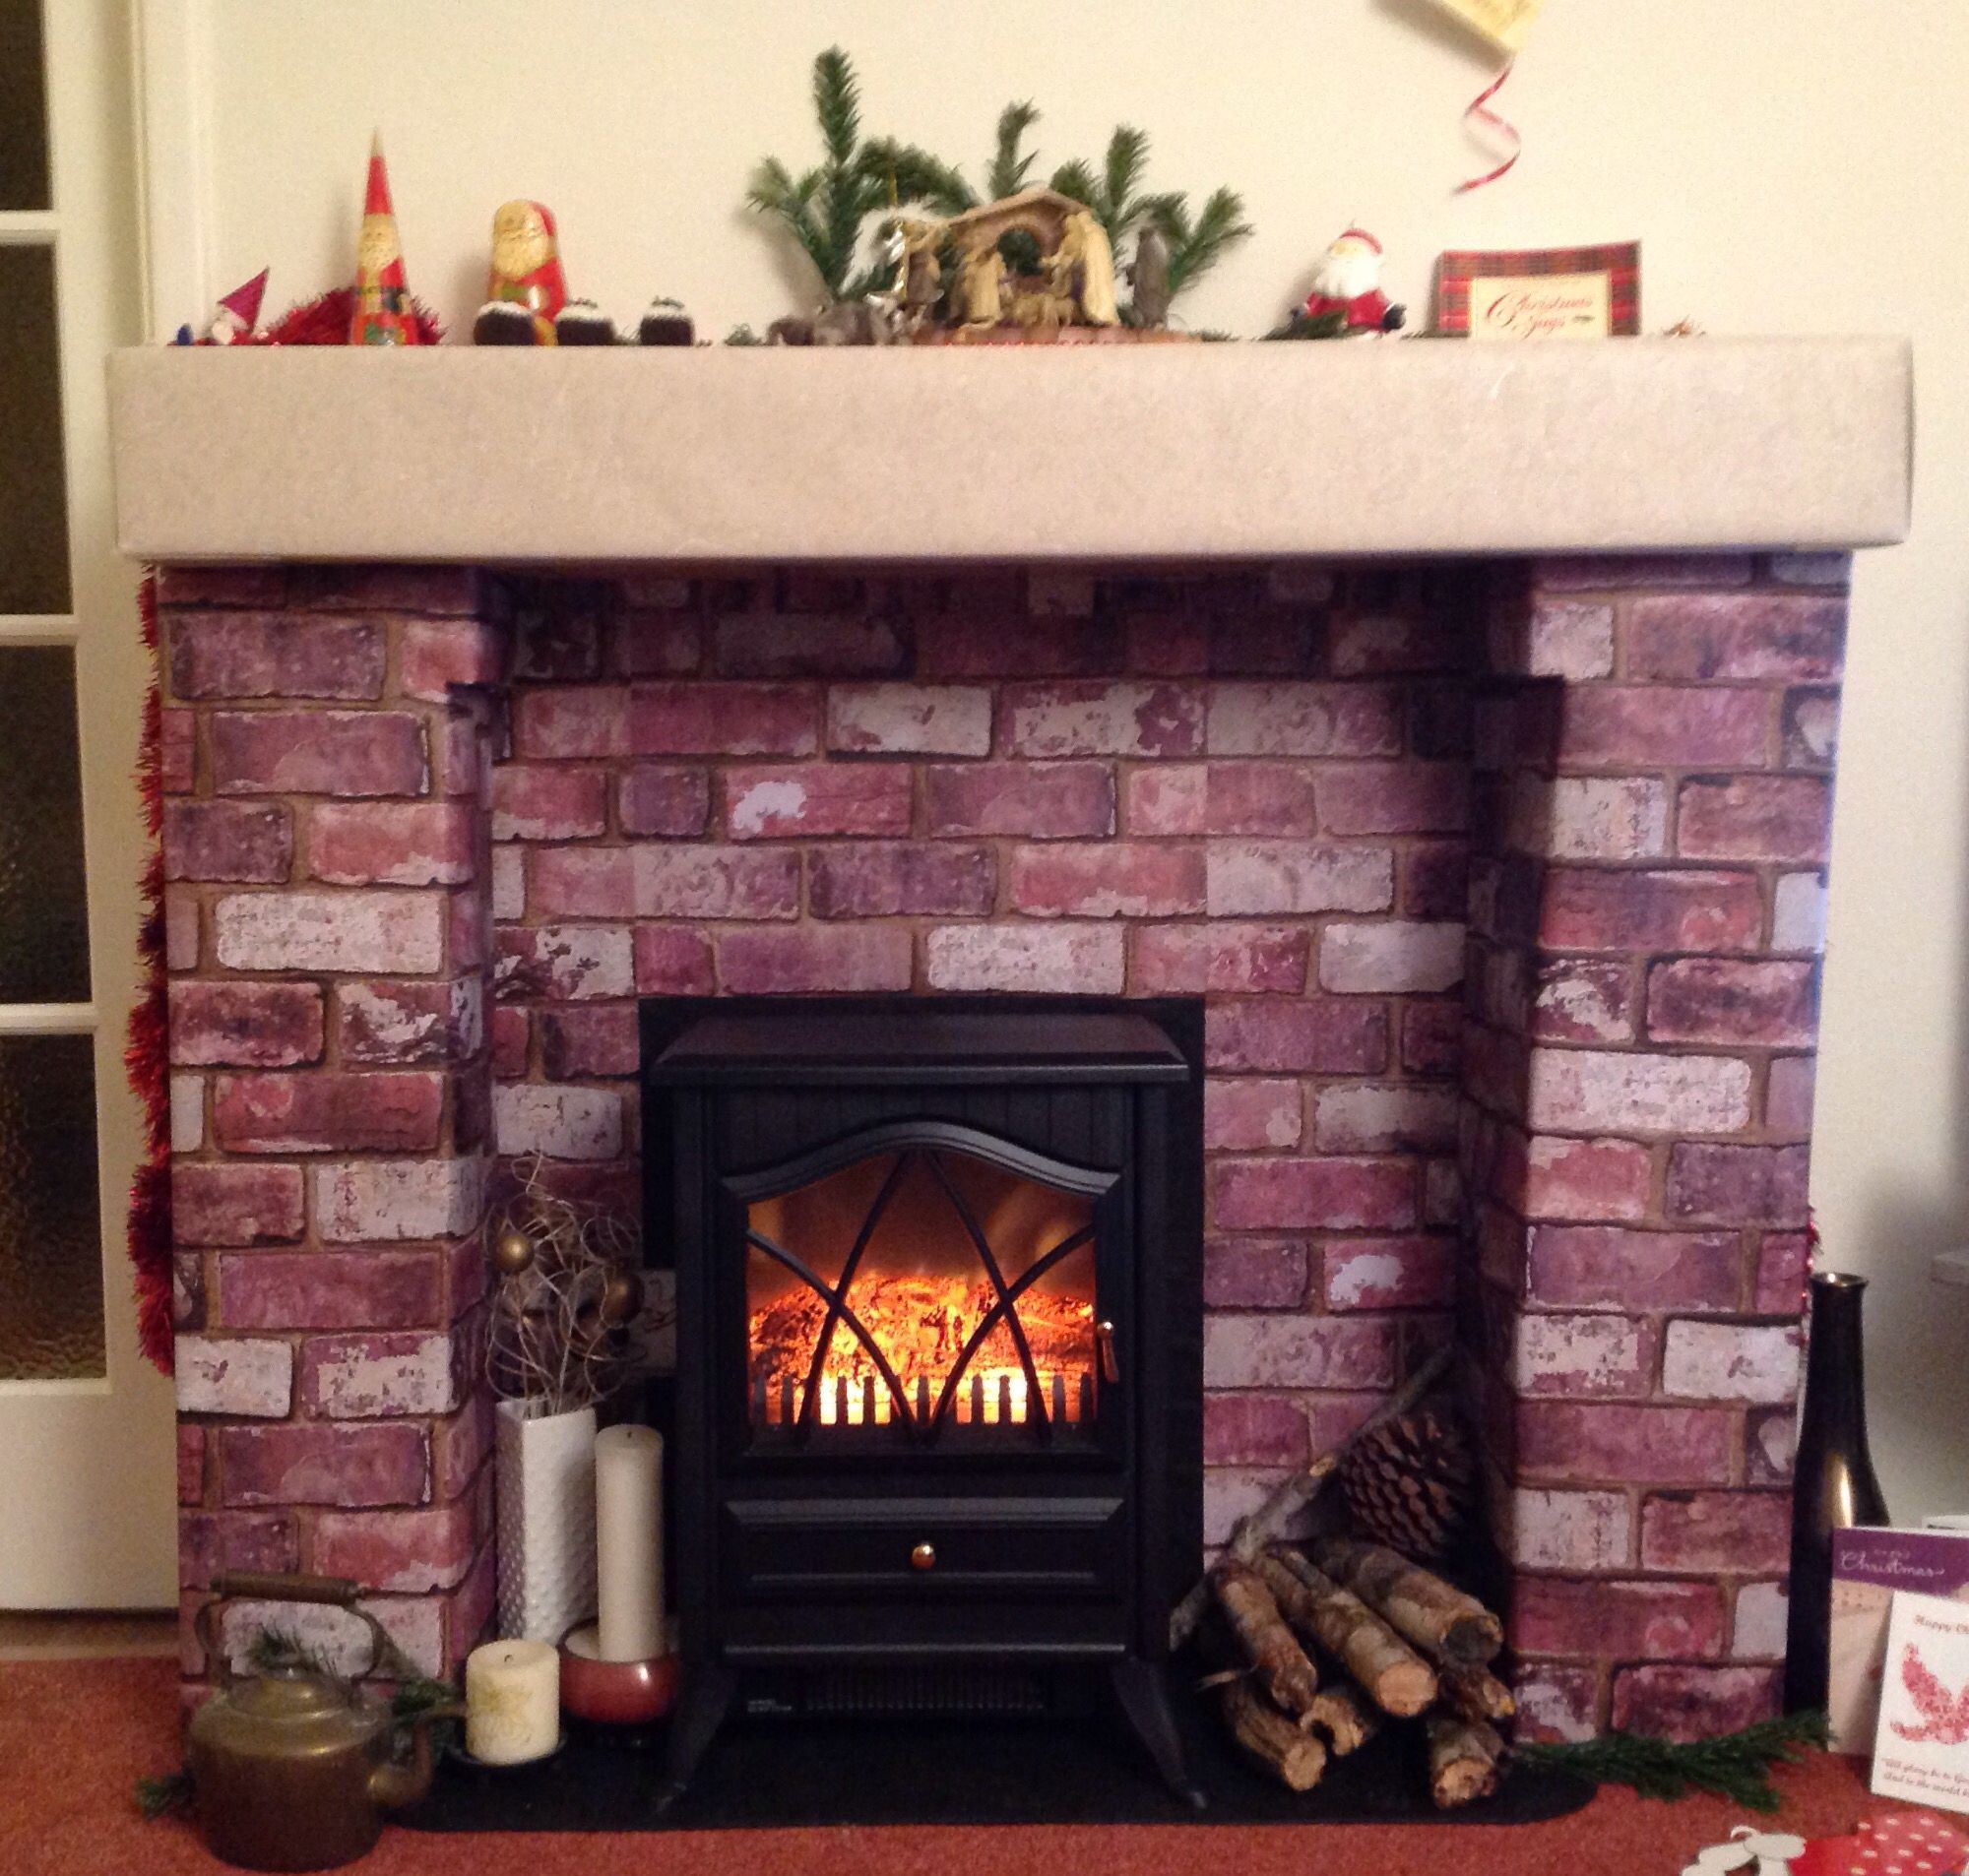 fake fireplace for christmas made from cardboard boxes and